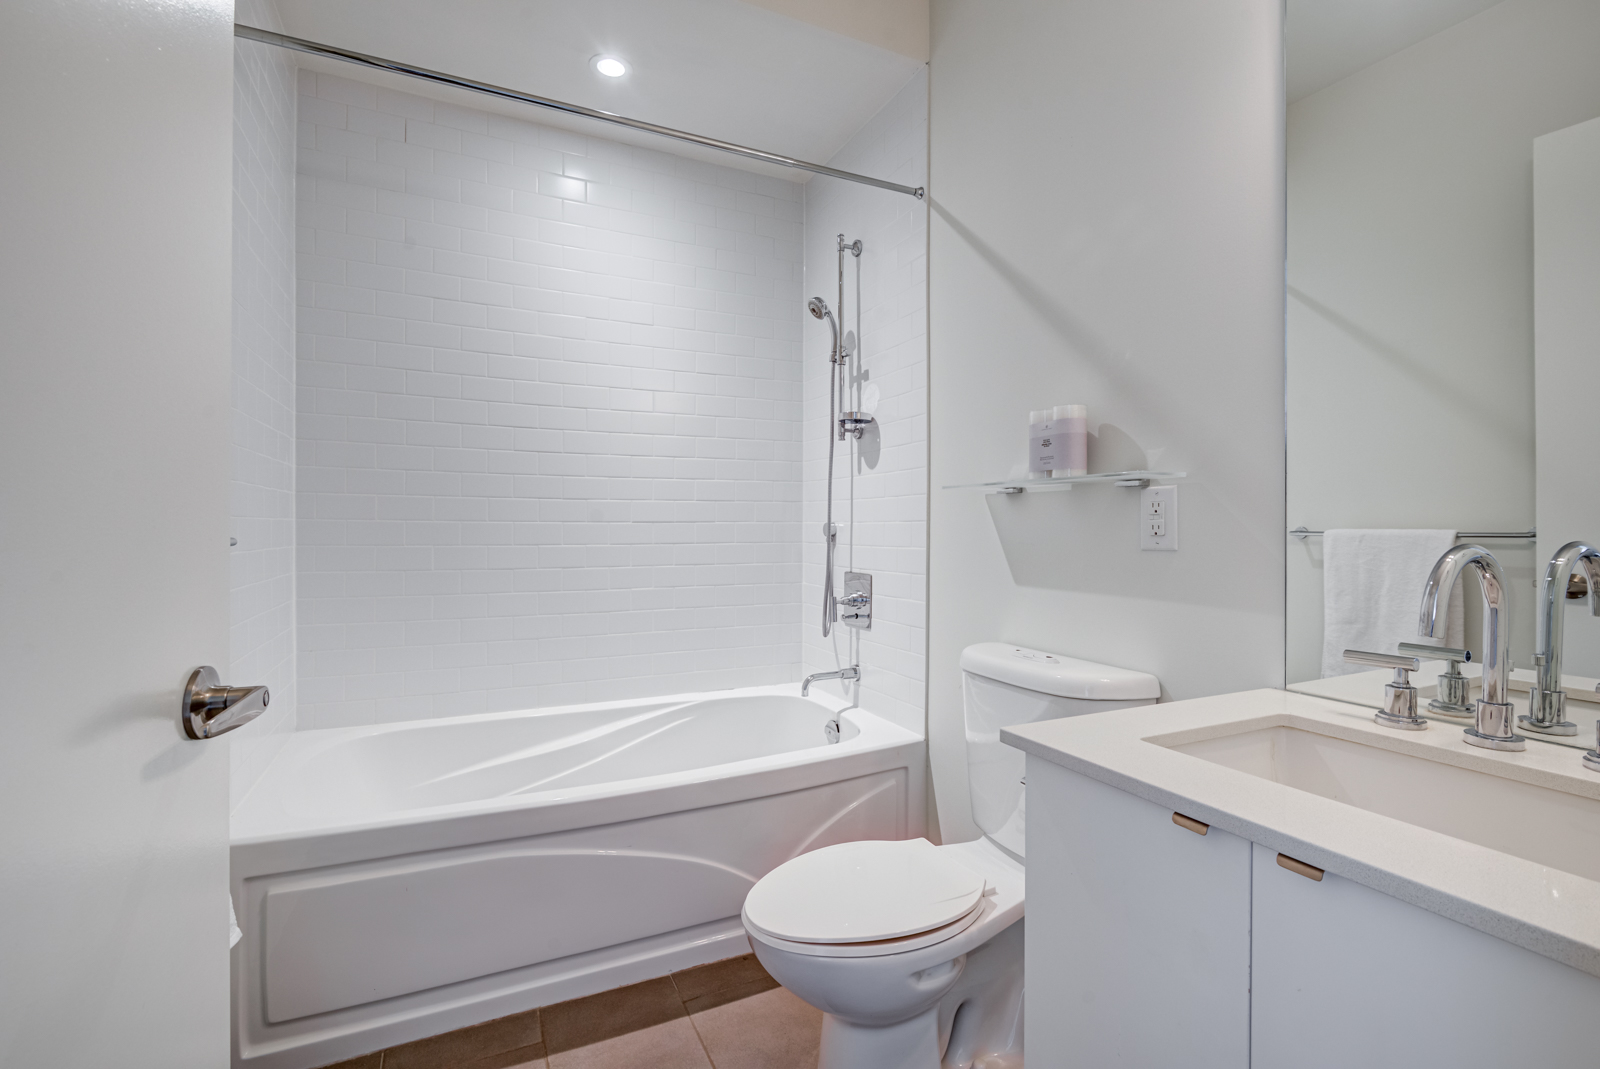 Bathroom with white tiles, tub, shelves and vanity